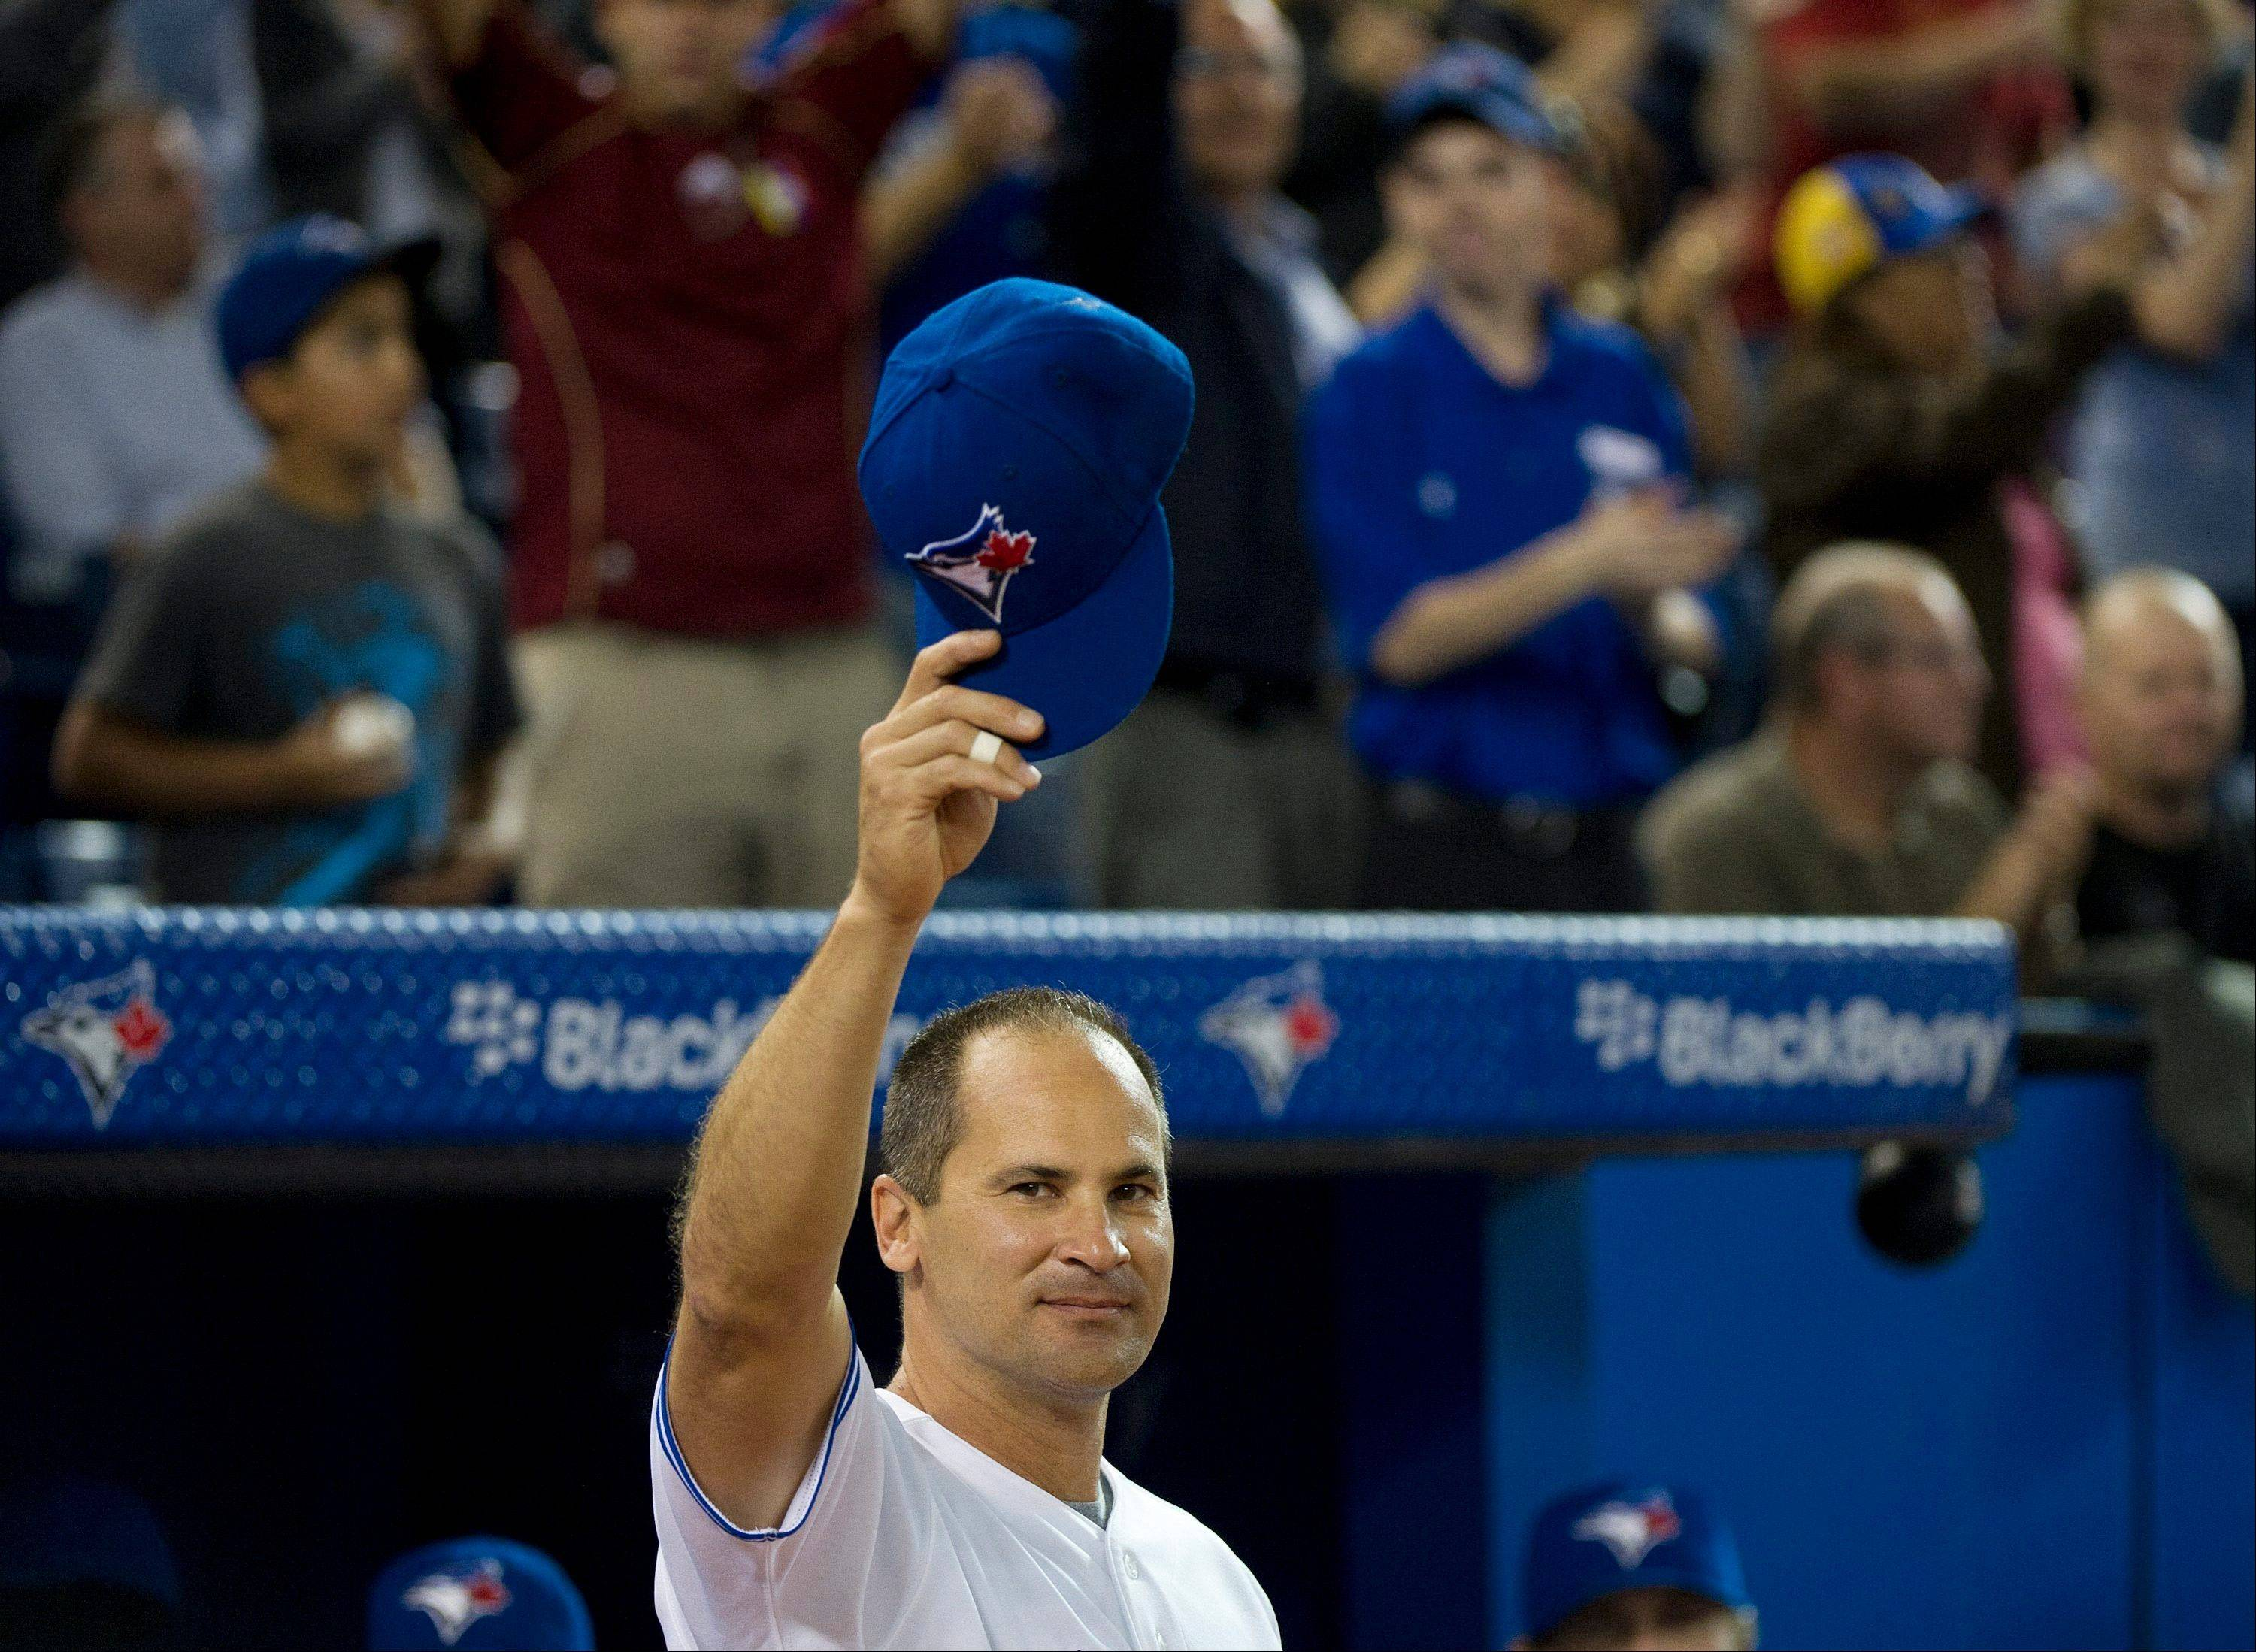 Blue Jays shortstop Omar Vizquel acknowledges the crowed before playing against the Minnesota Twins on Wednesday in Toronto.